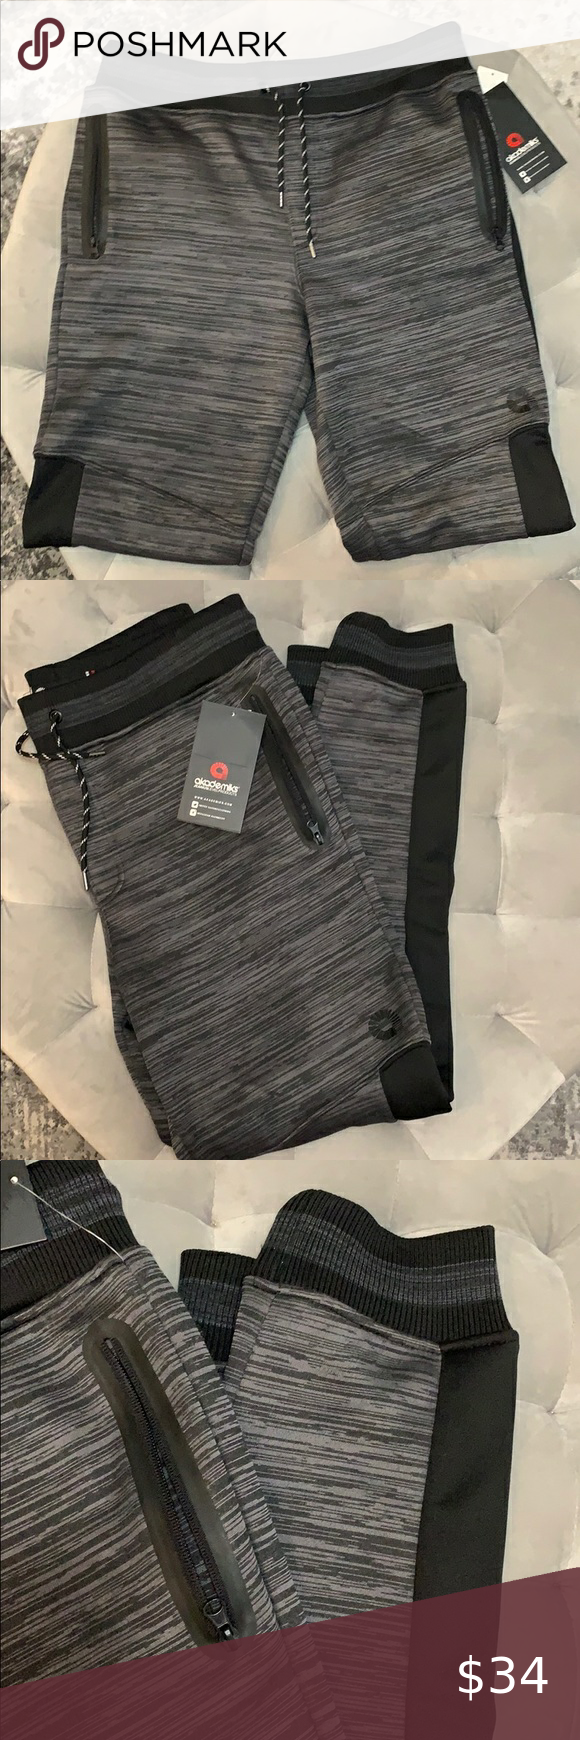 NEW Boutique! Men's Akademiks Slim Joggers XL NEW Boutique! Men's Akademiks Slim Joggers XL NWT, Charcoal And Black, Nice Silky Soft Material. academiks Pants Sweatpants & Joggers